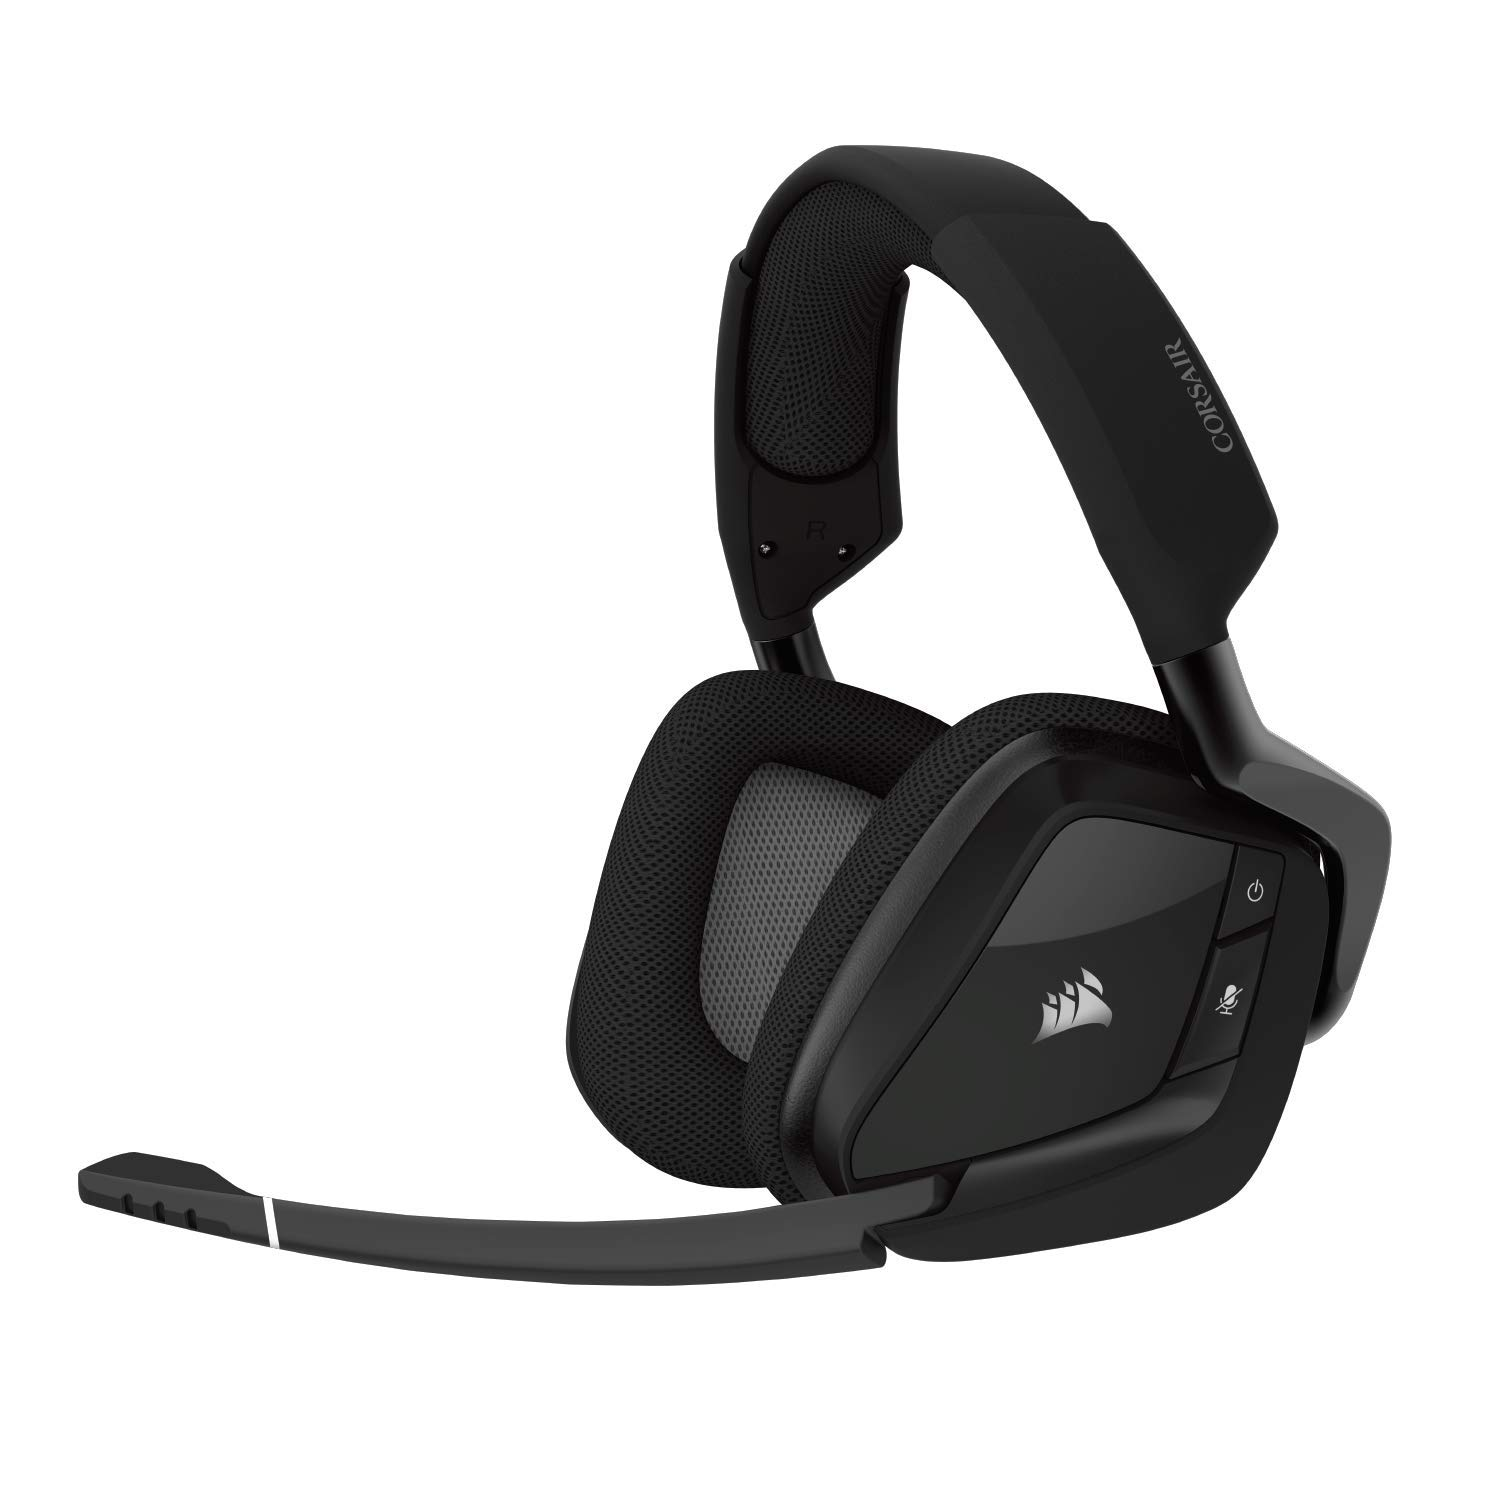 CORSAIR Void PRO RGB Wireless Gaming Headset - Dolby 7.1 Surround Sound Headphones for PC - Discord Certified - 50mm Drivers - Carbon by Corsair